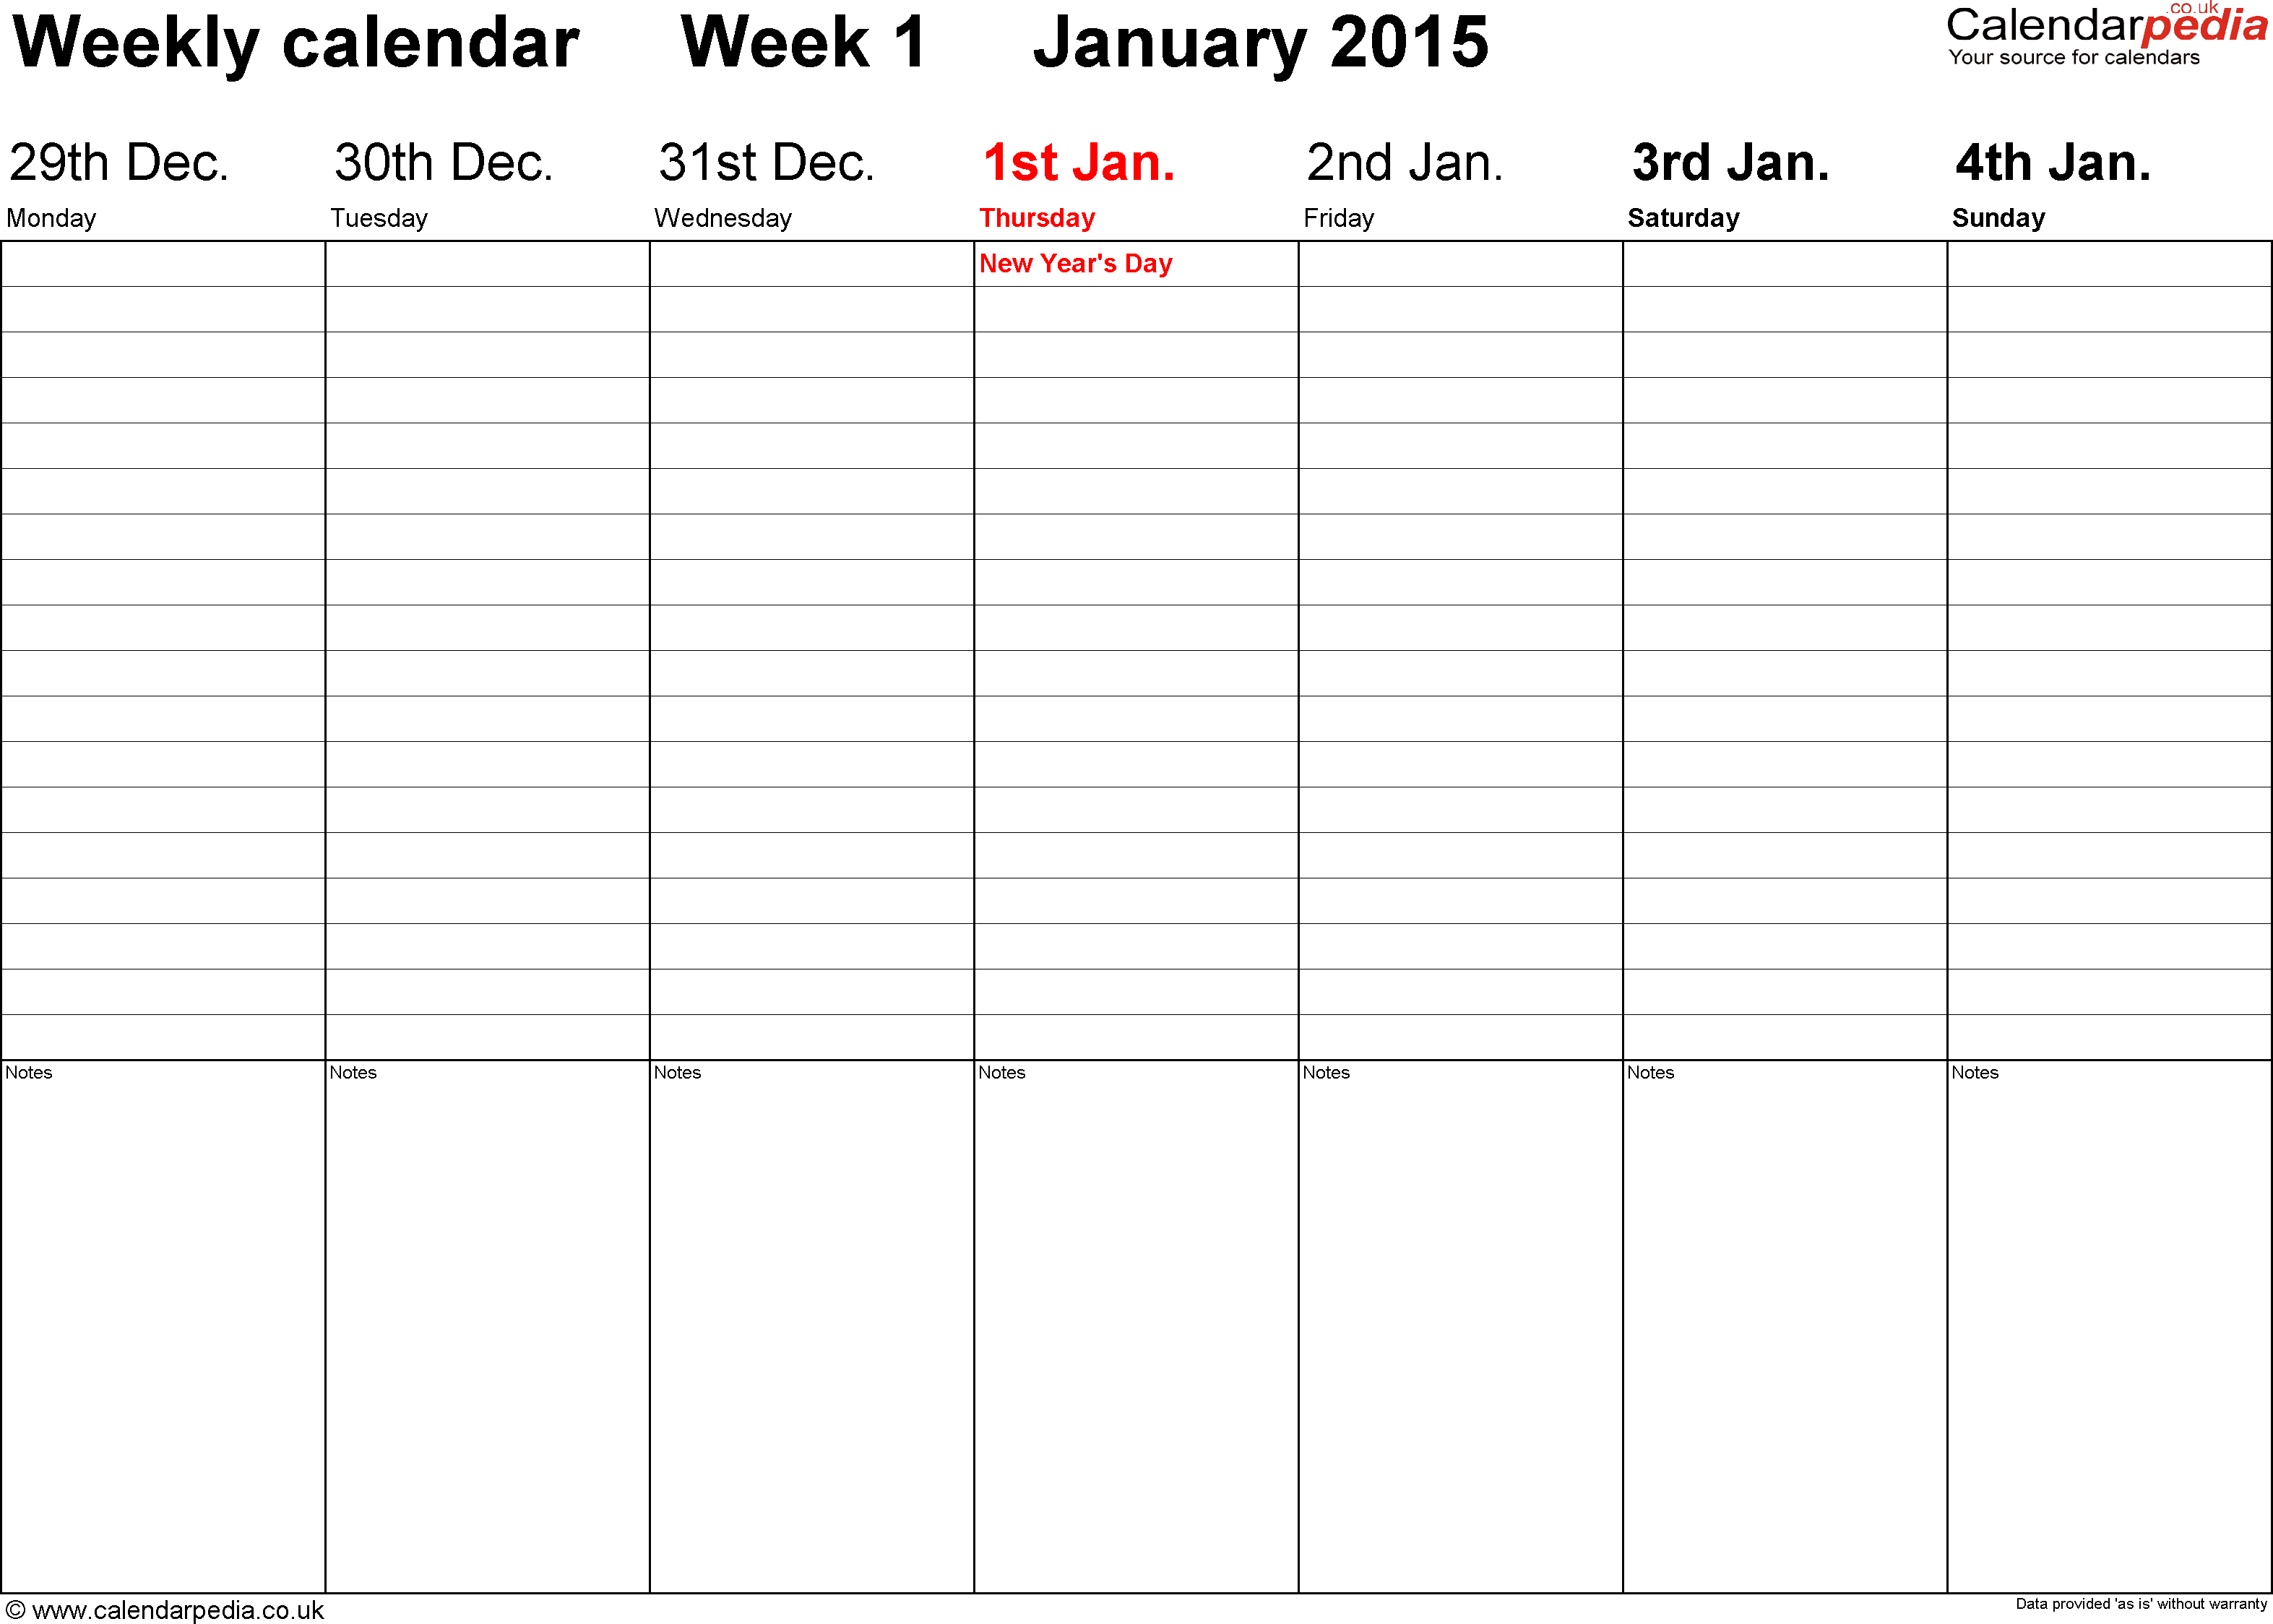 Weekly calendar 2015 uk free printable templates for excel excel template 3 weekly calendar 2015 landscape orientation 53 pages 1 calendar pronofoot35fo Image collections